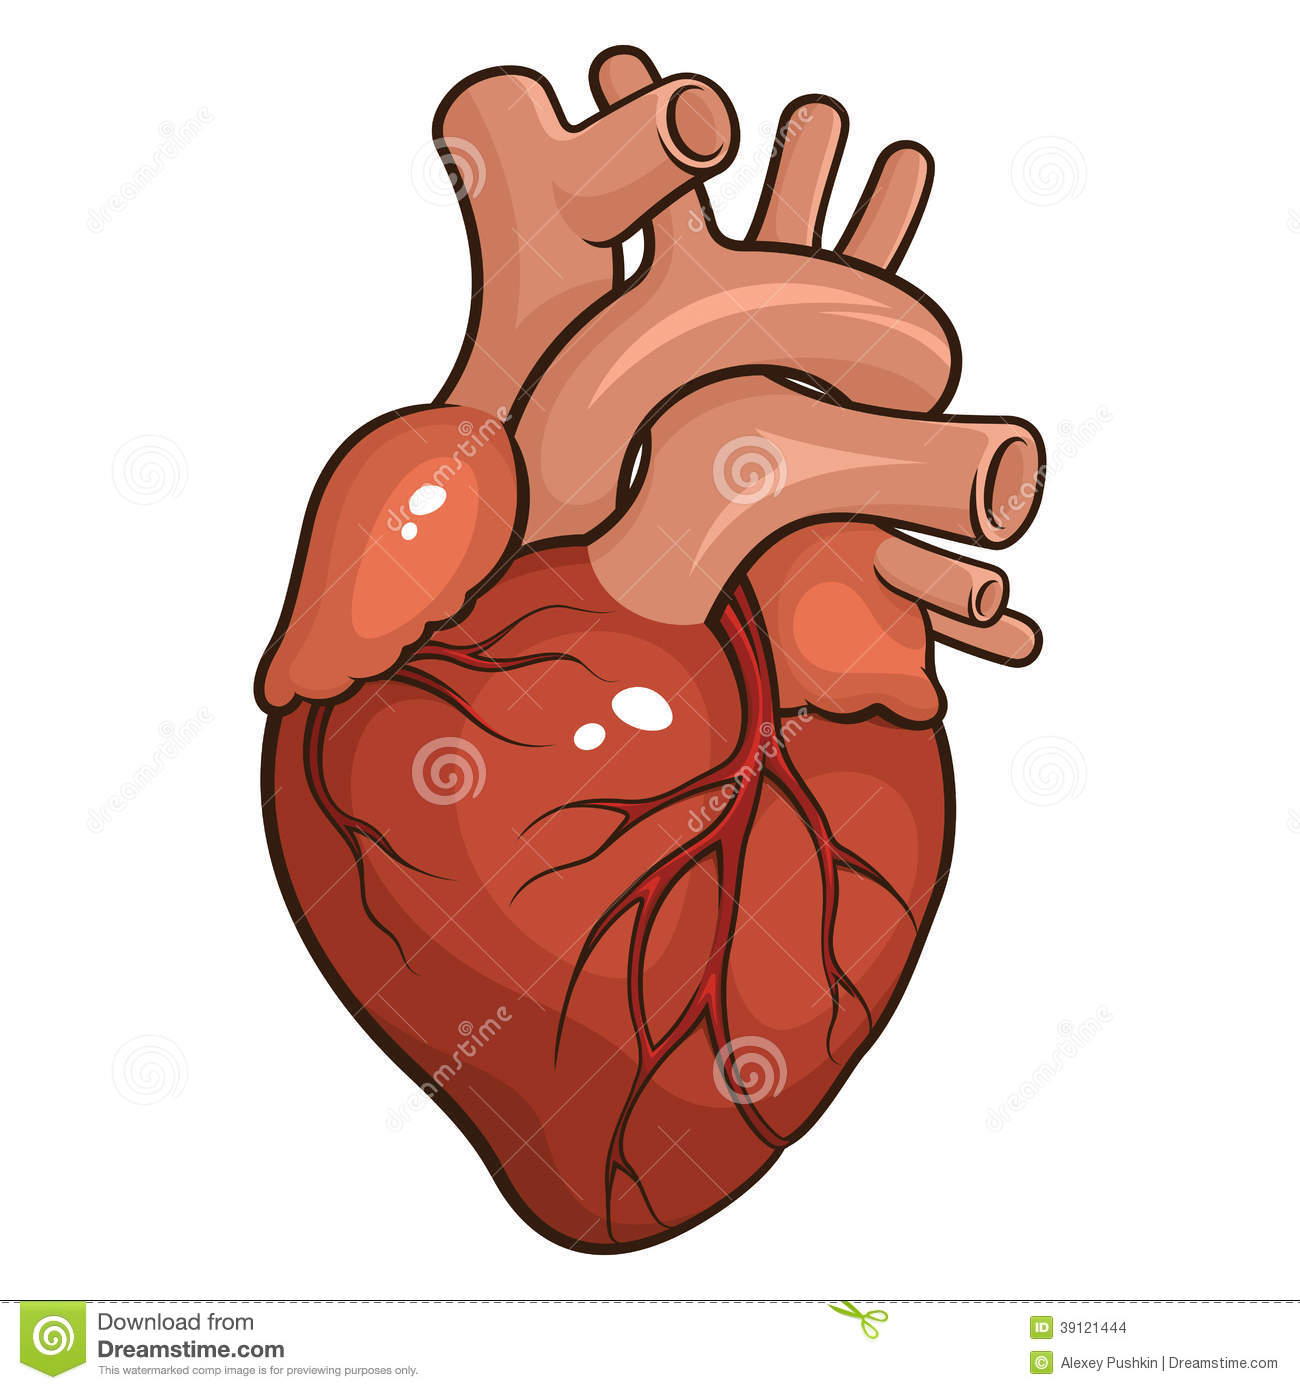 Human Heart Drawing Images At Getdrawings Free For Personal